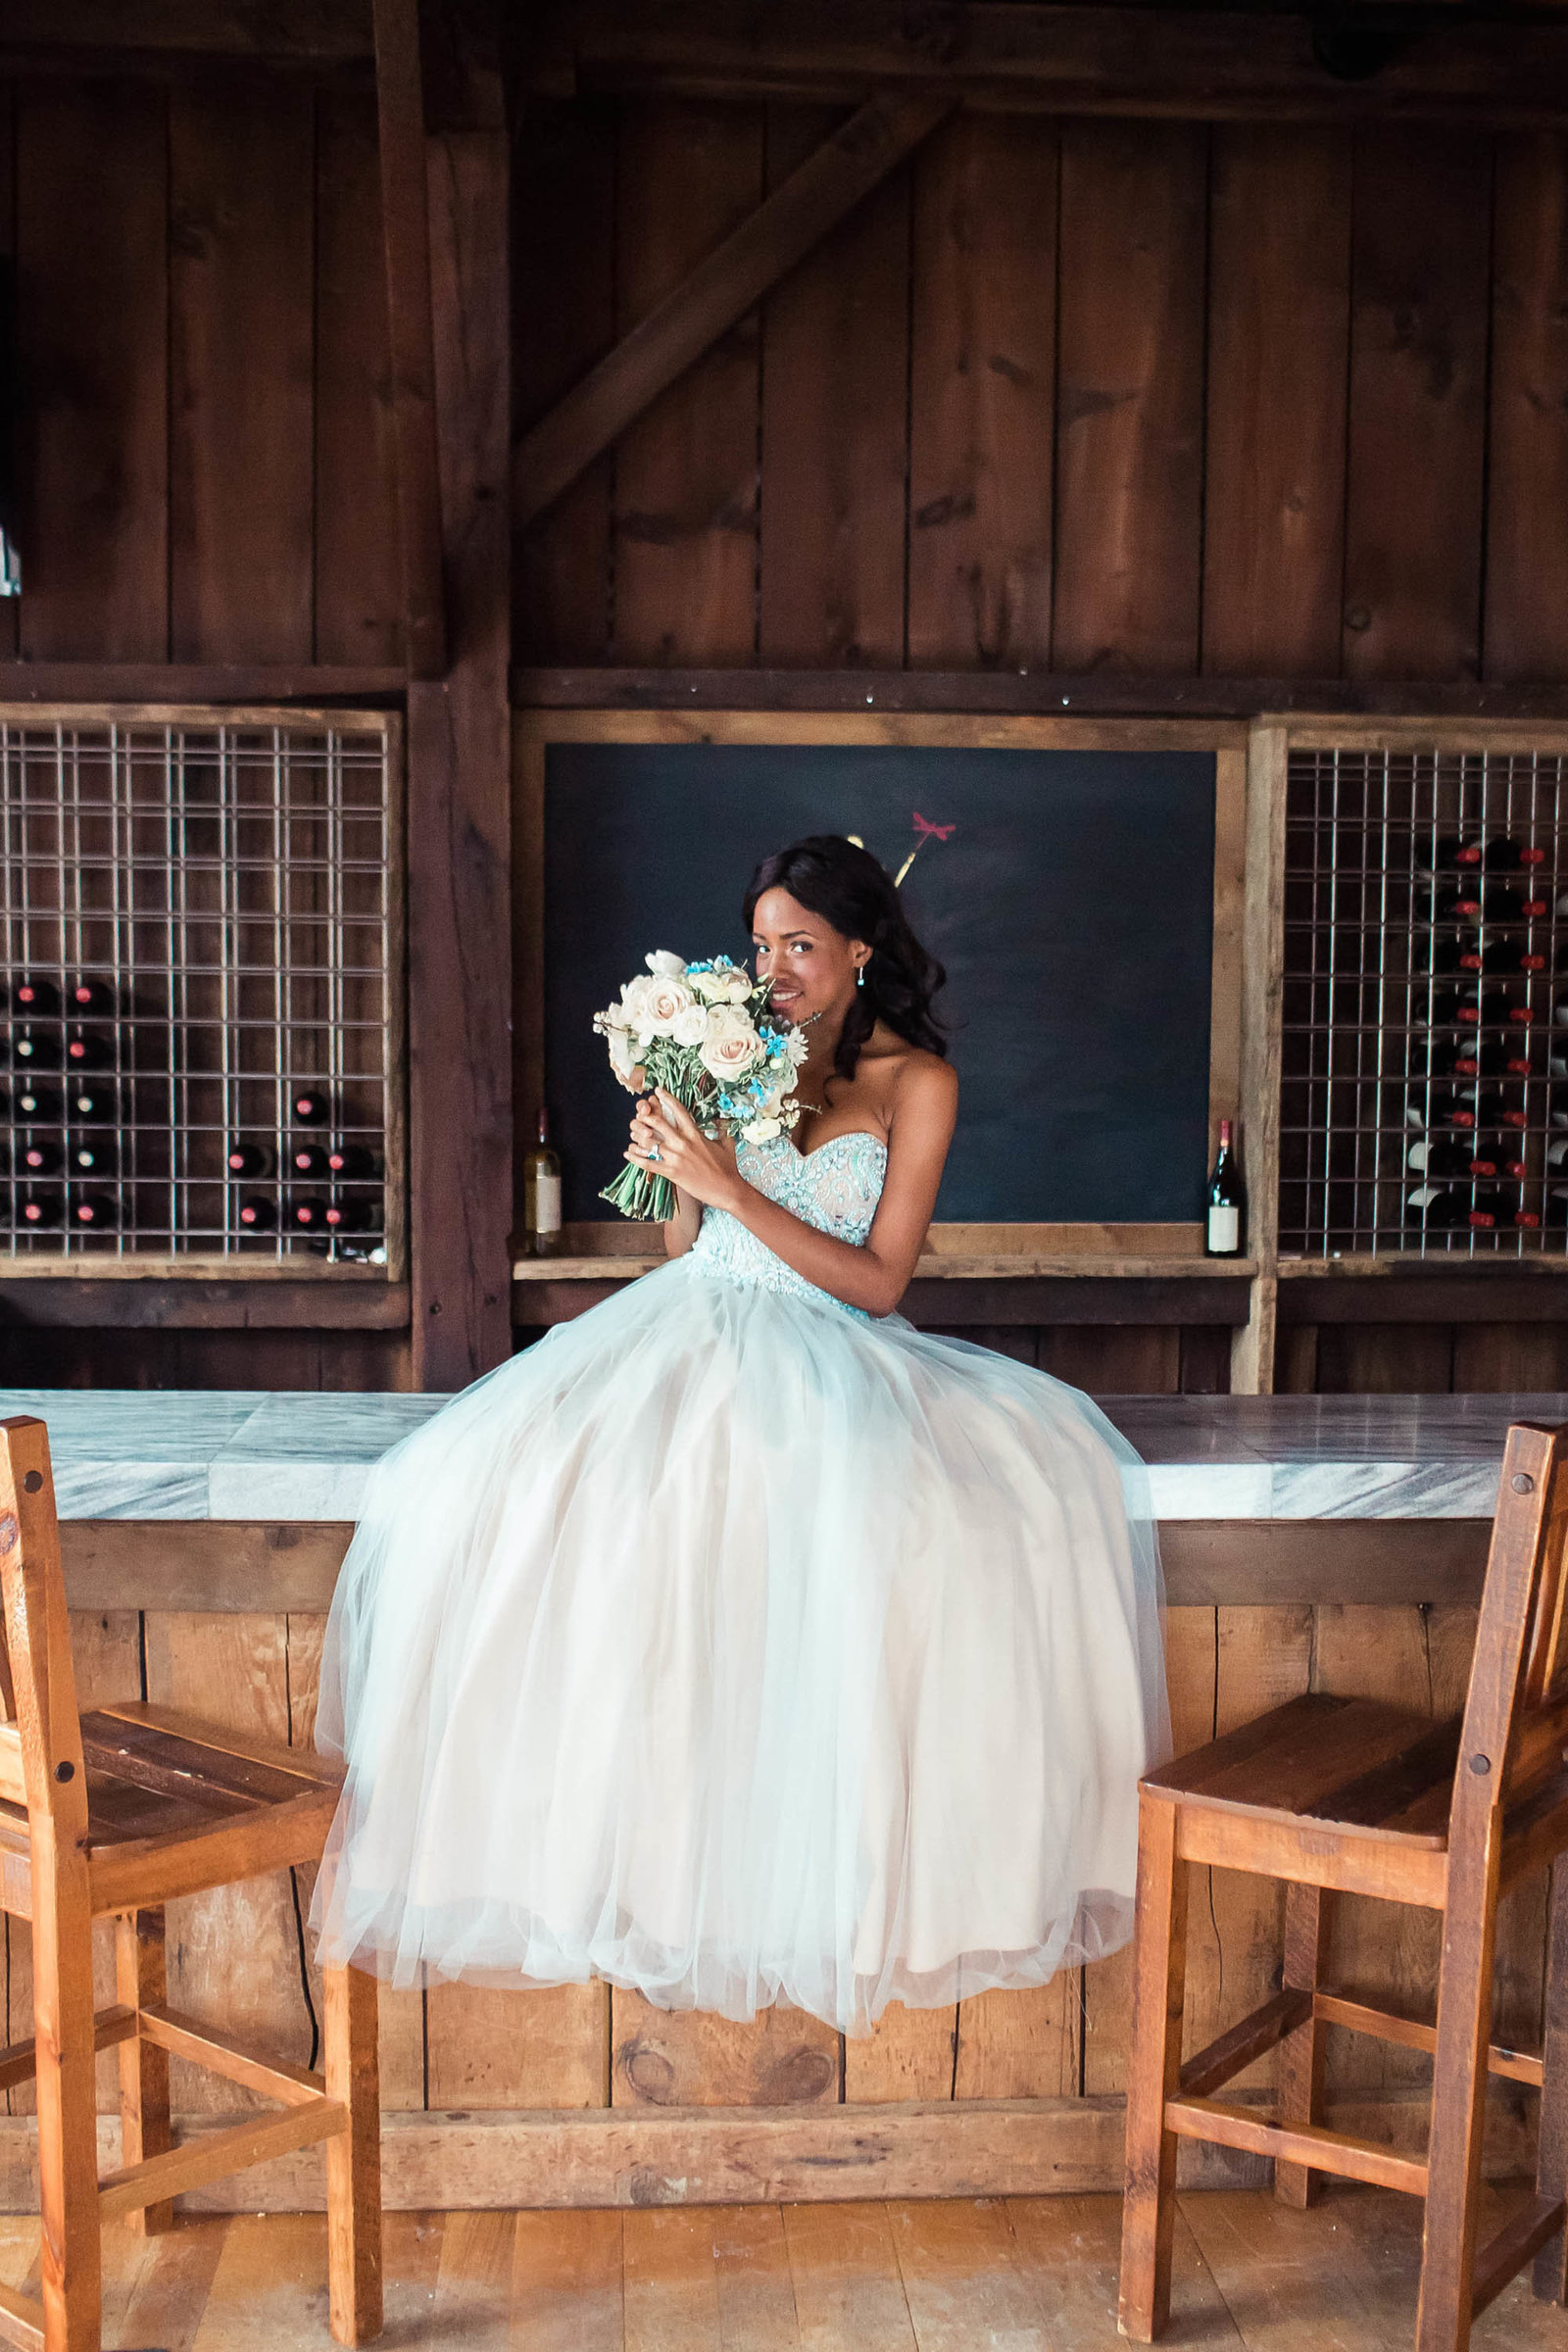 terani-mint-sweetwater-farm-winery-philadelphia-fashion-delaware-main-line-today-magazine-bridal-editorial-photography-kate-timbers237